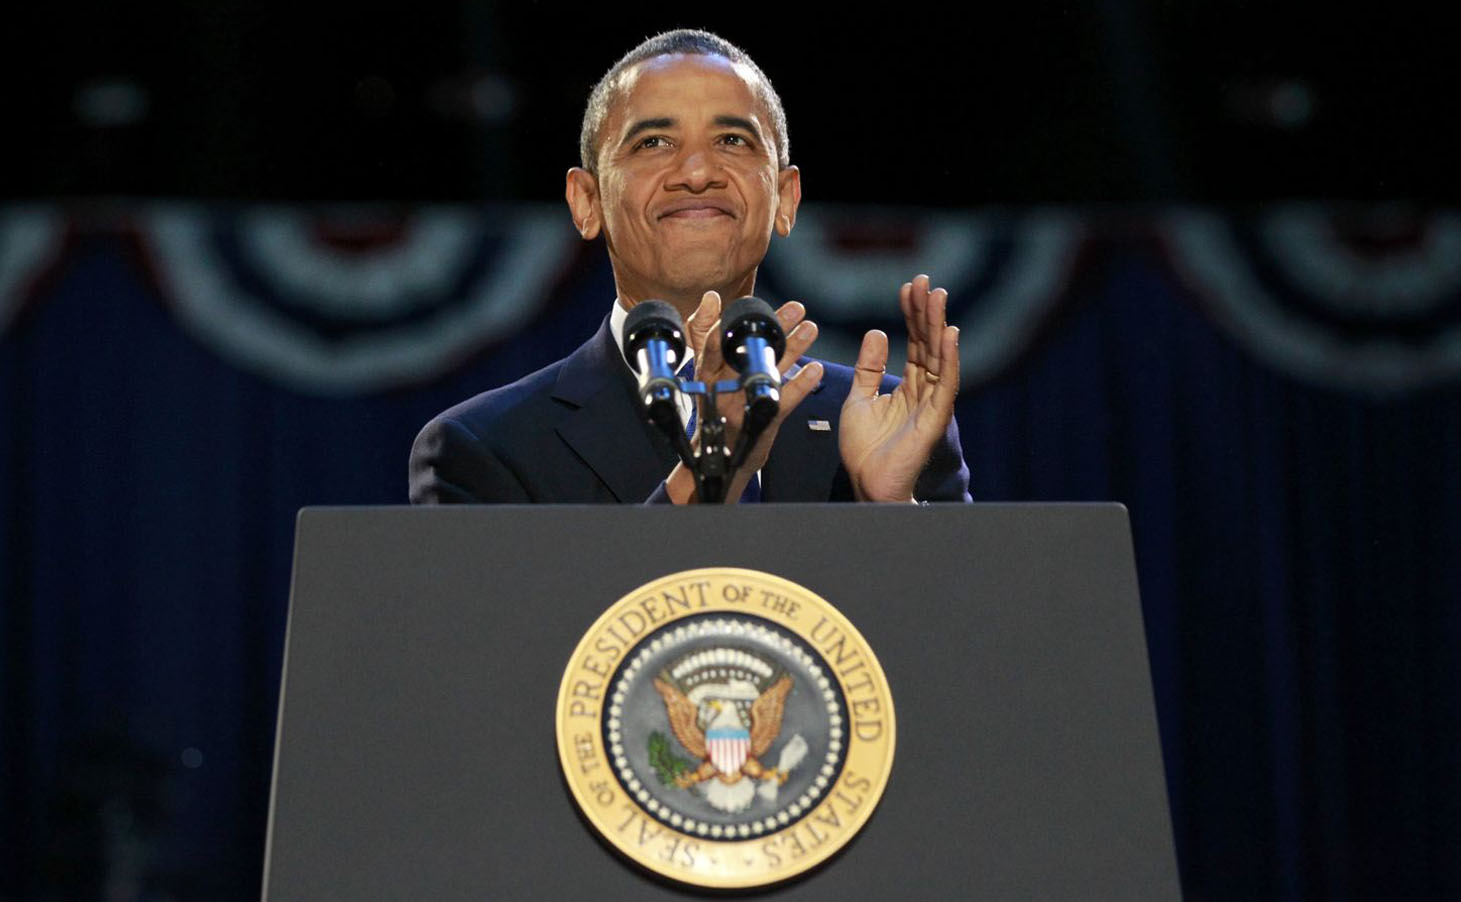 obama re election President barack obama has been re-elected to a second term, defeating republican challenger mitt romney america's first black president secured more than the 270.